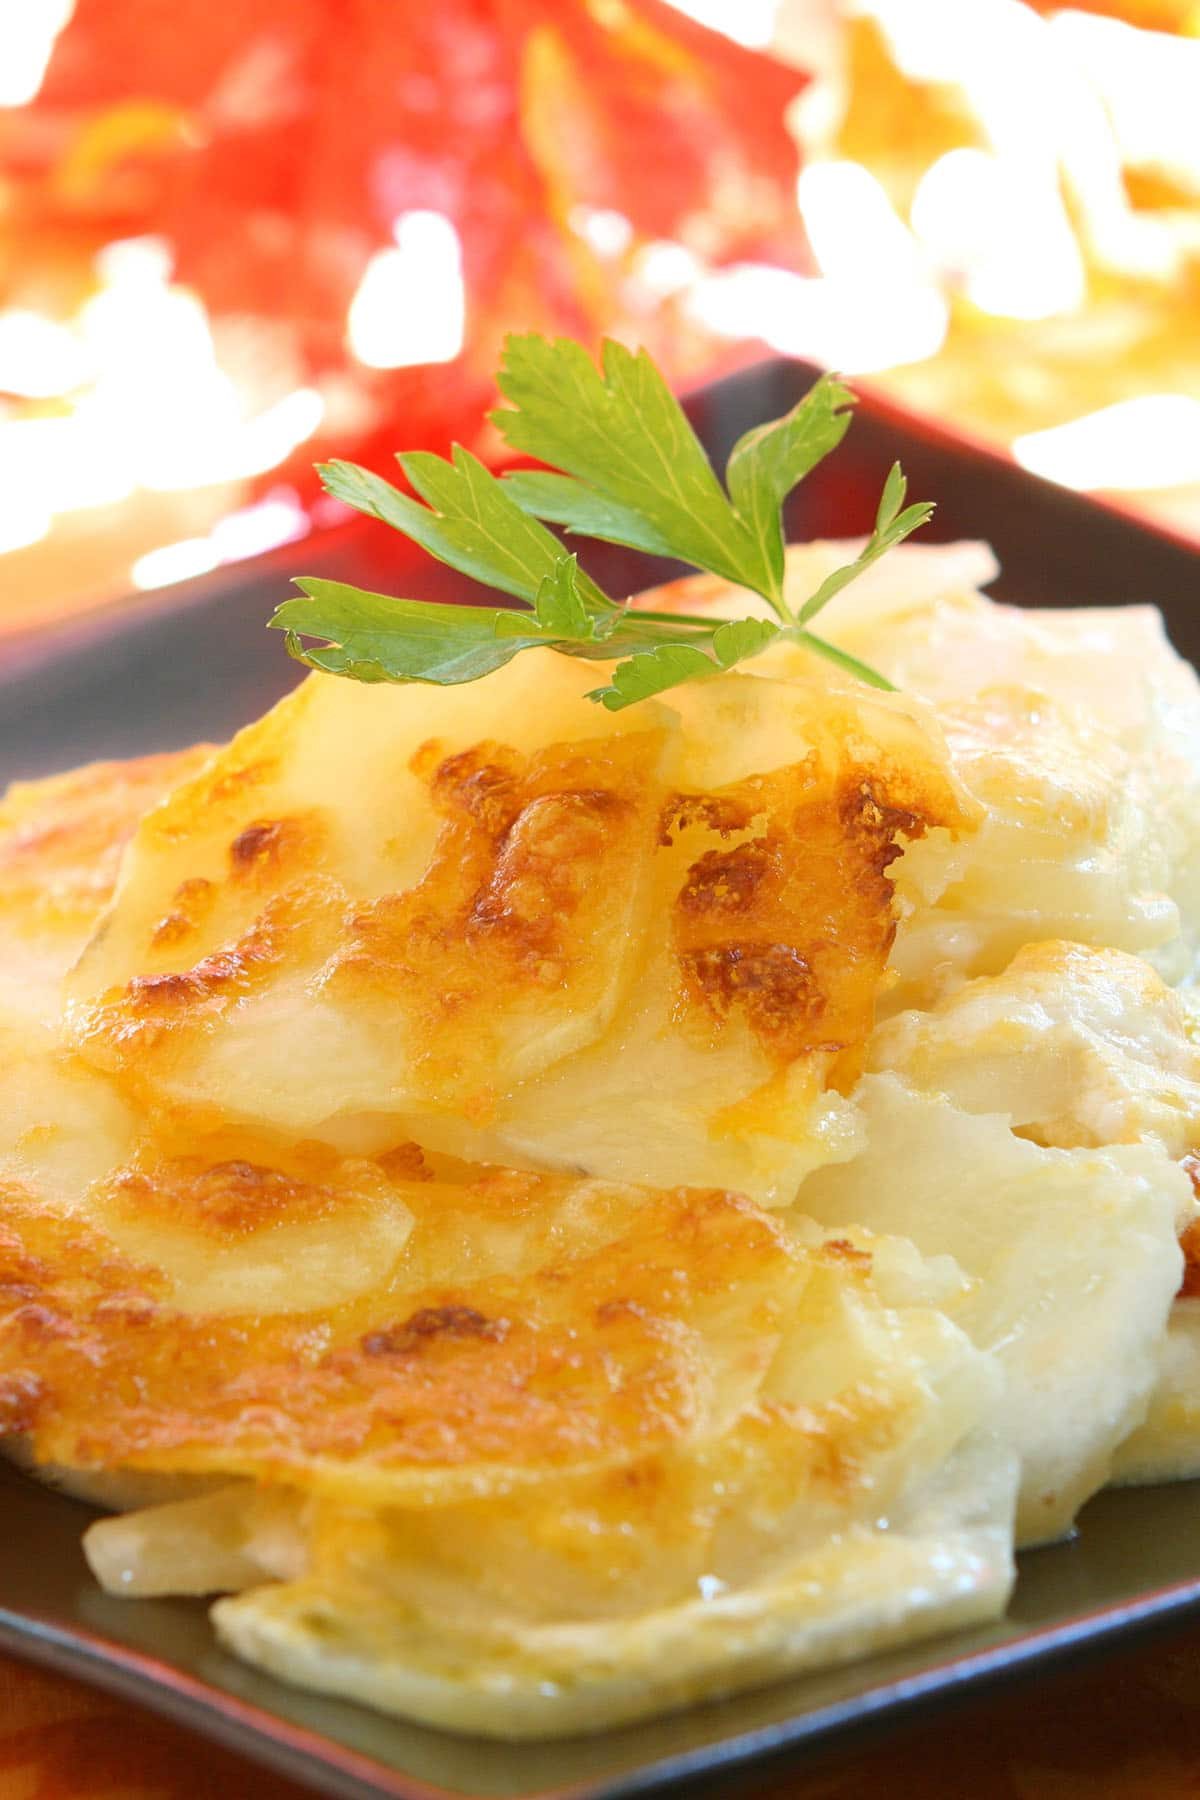 Cheesy Scalloped Potatoes served on a dish